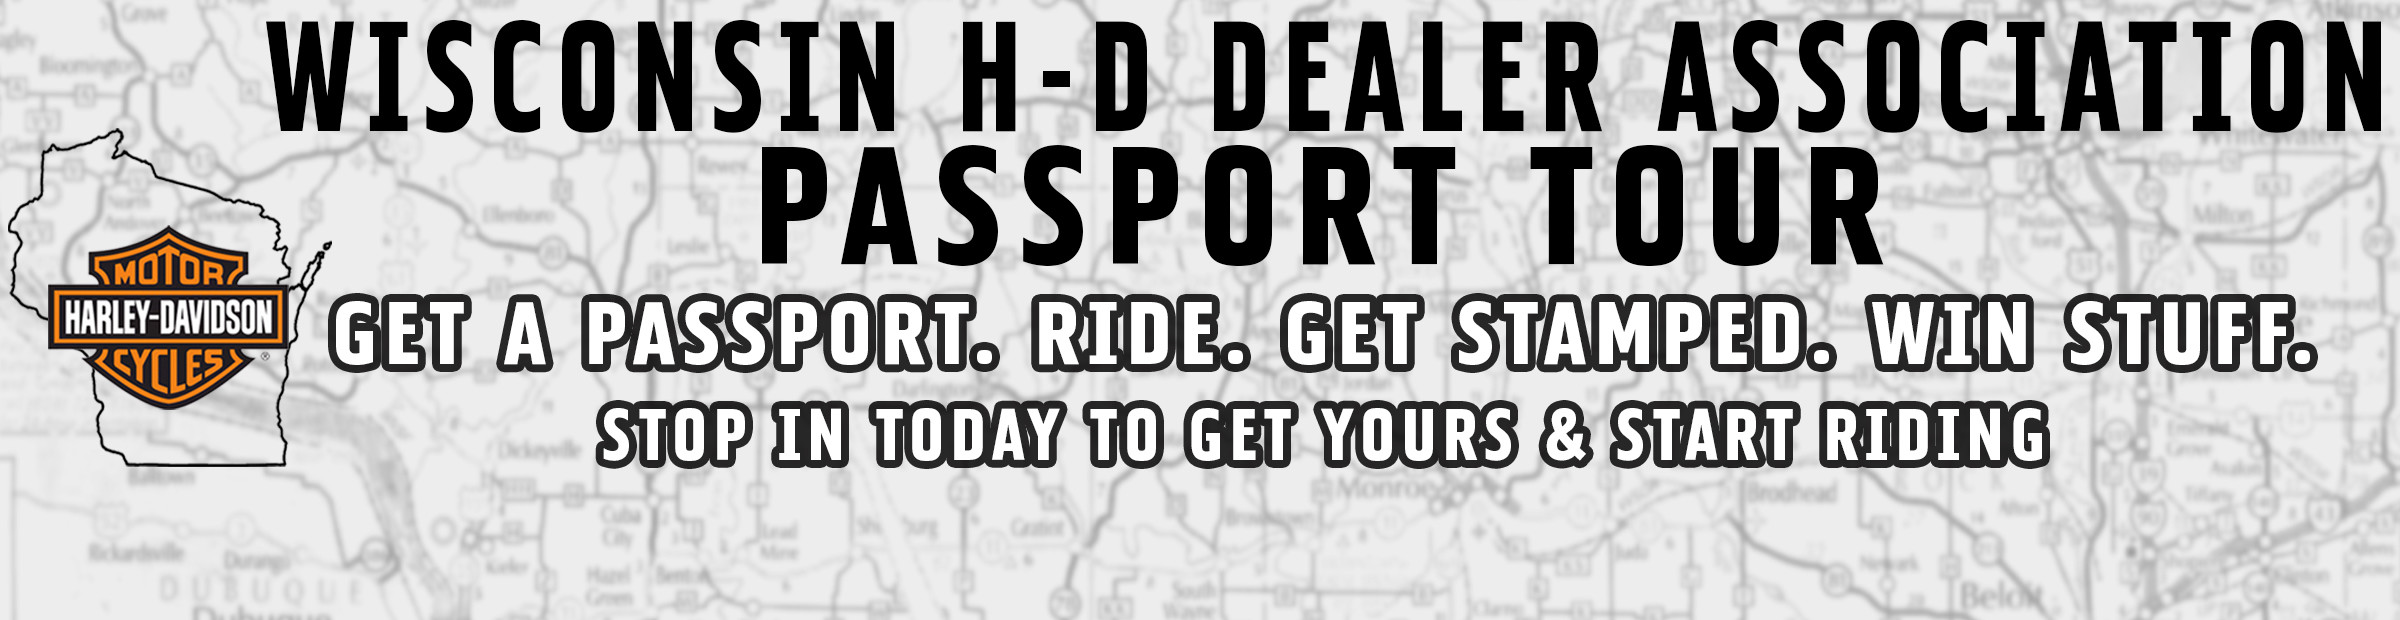 Wisconsin H-D Dealers Association Passport Tour